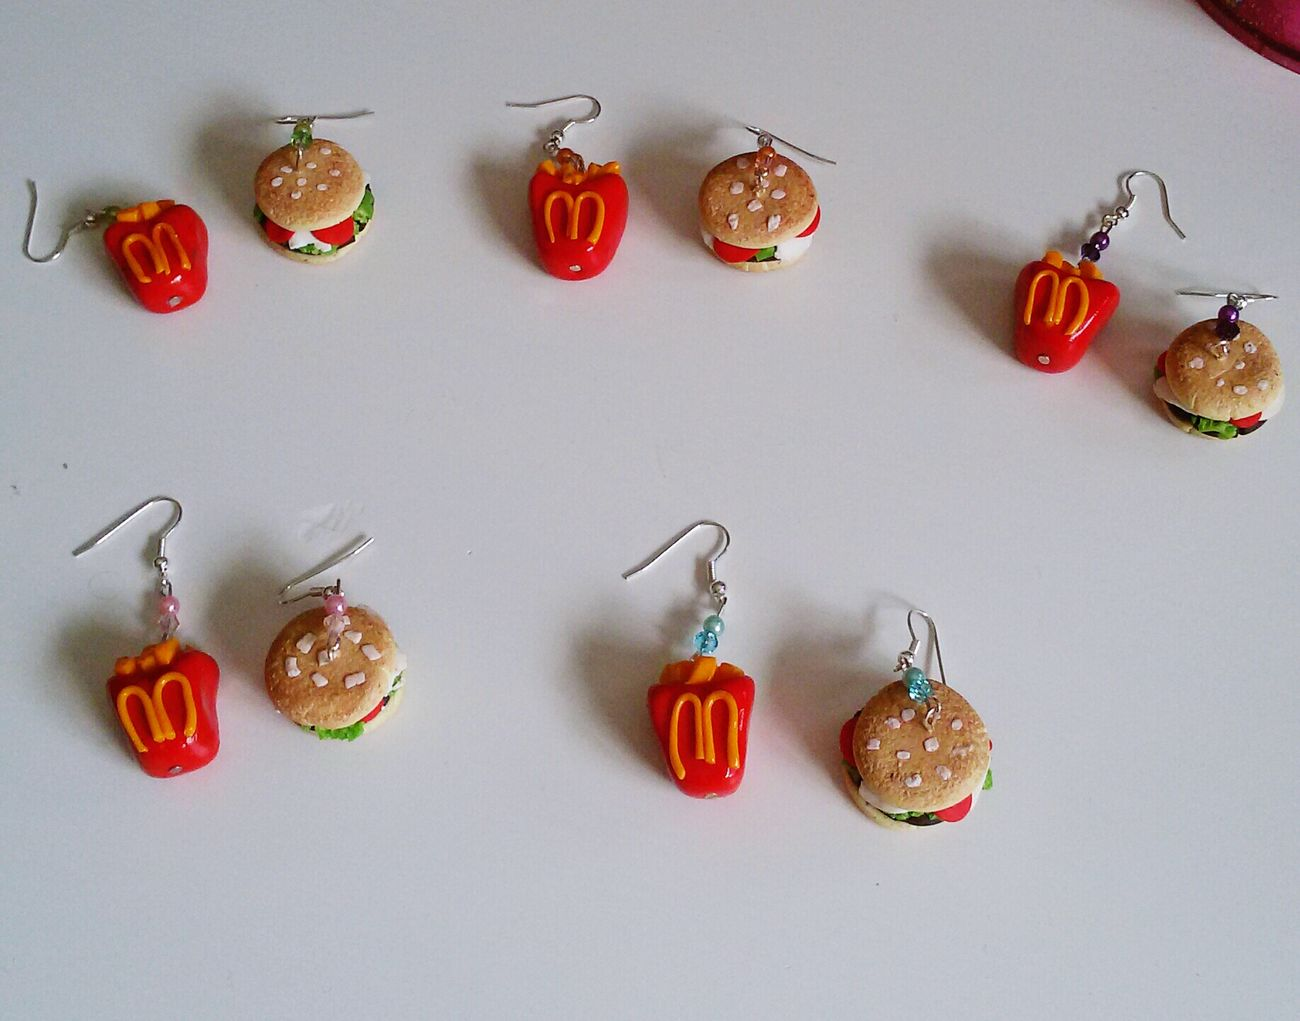 Handmade Earrings Handmade Jewellery Food Bijoux Fimo Fimolovers Polymerclay